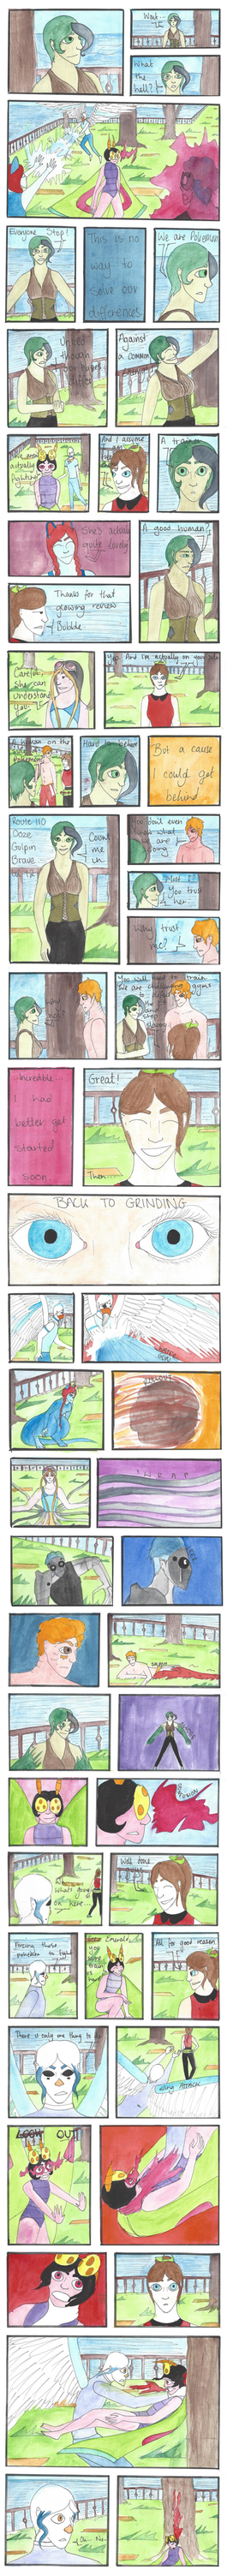 Unchained Nuzlocke: Page 27 by Naither